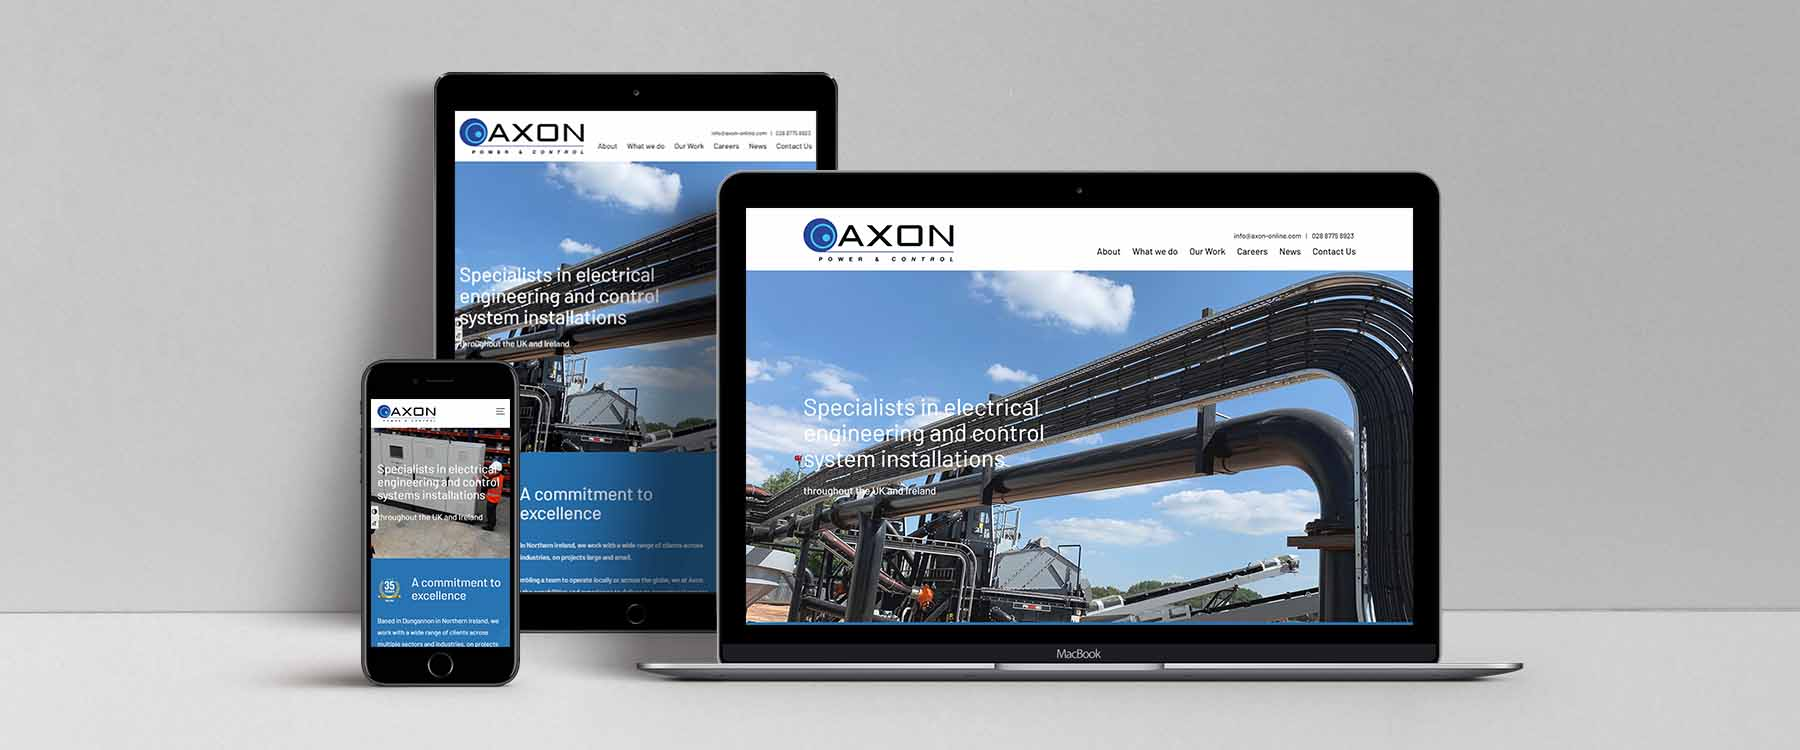 Axon Power & Control Image First